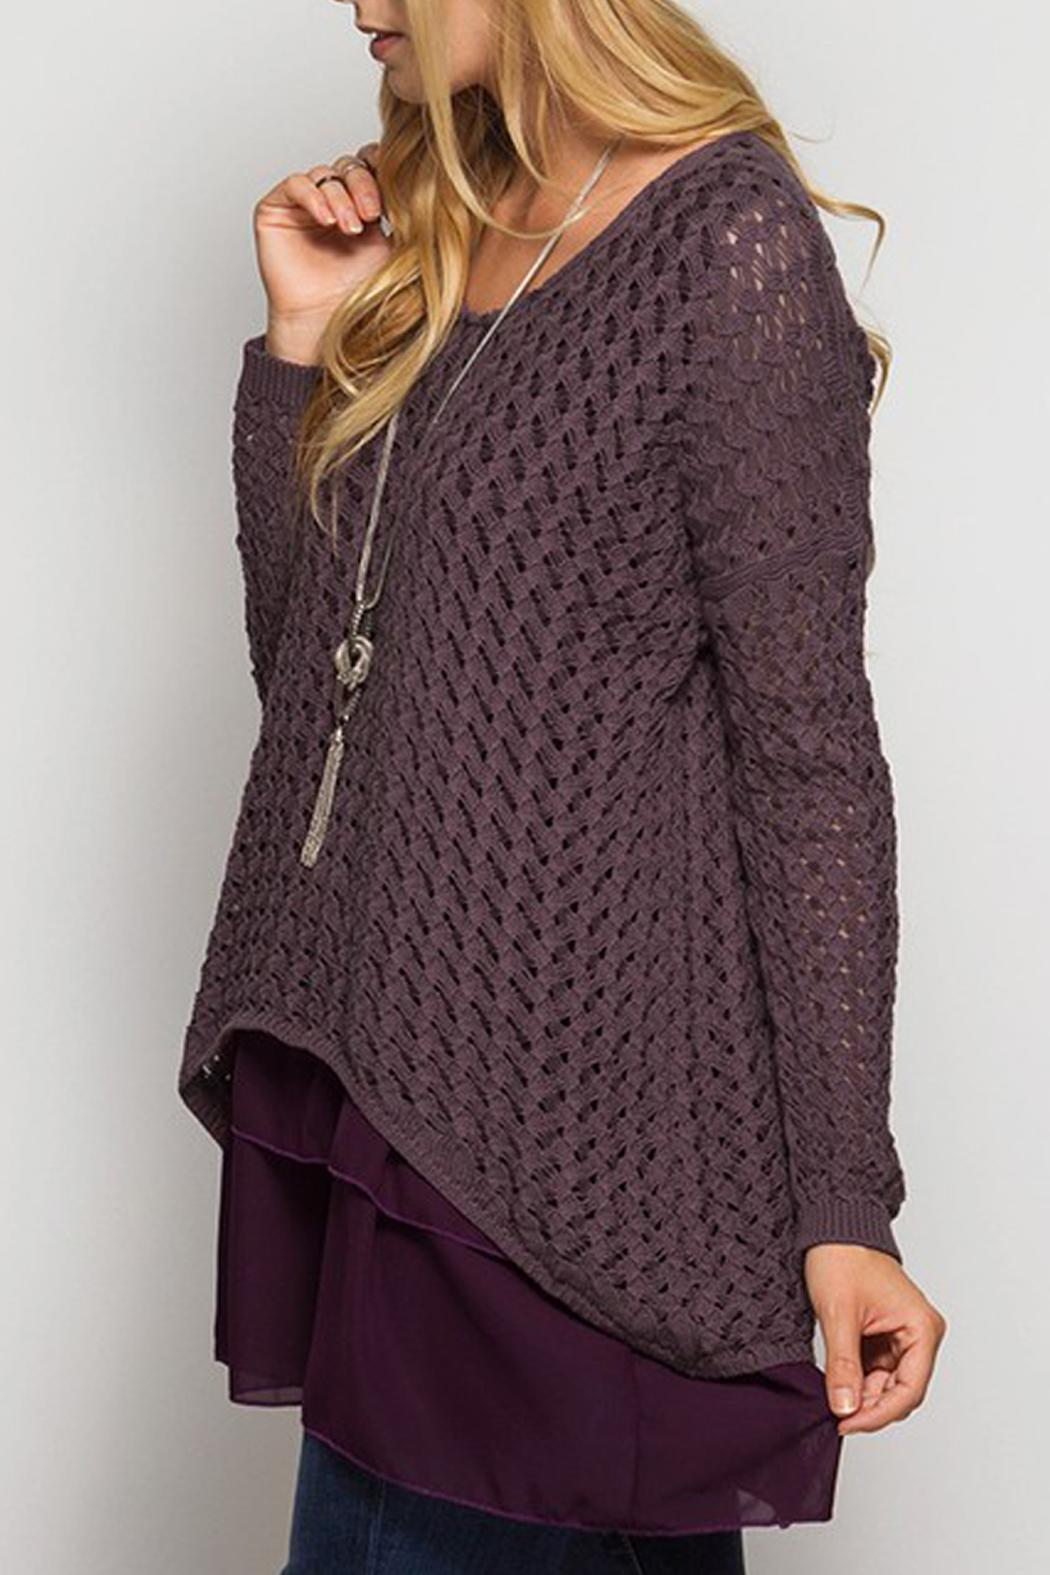 She   Sky Long Sleeve Sweater Tunic from Texas by JChronicles ...